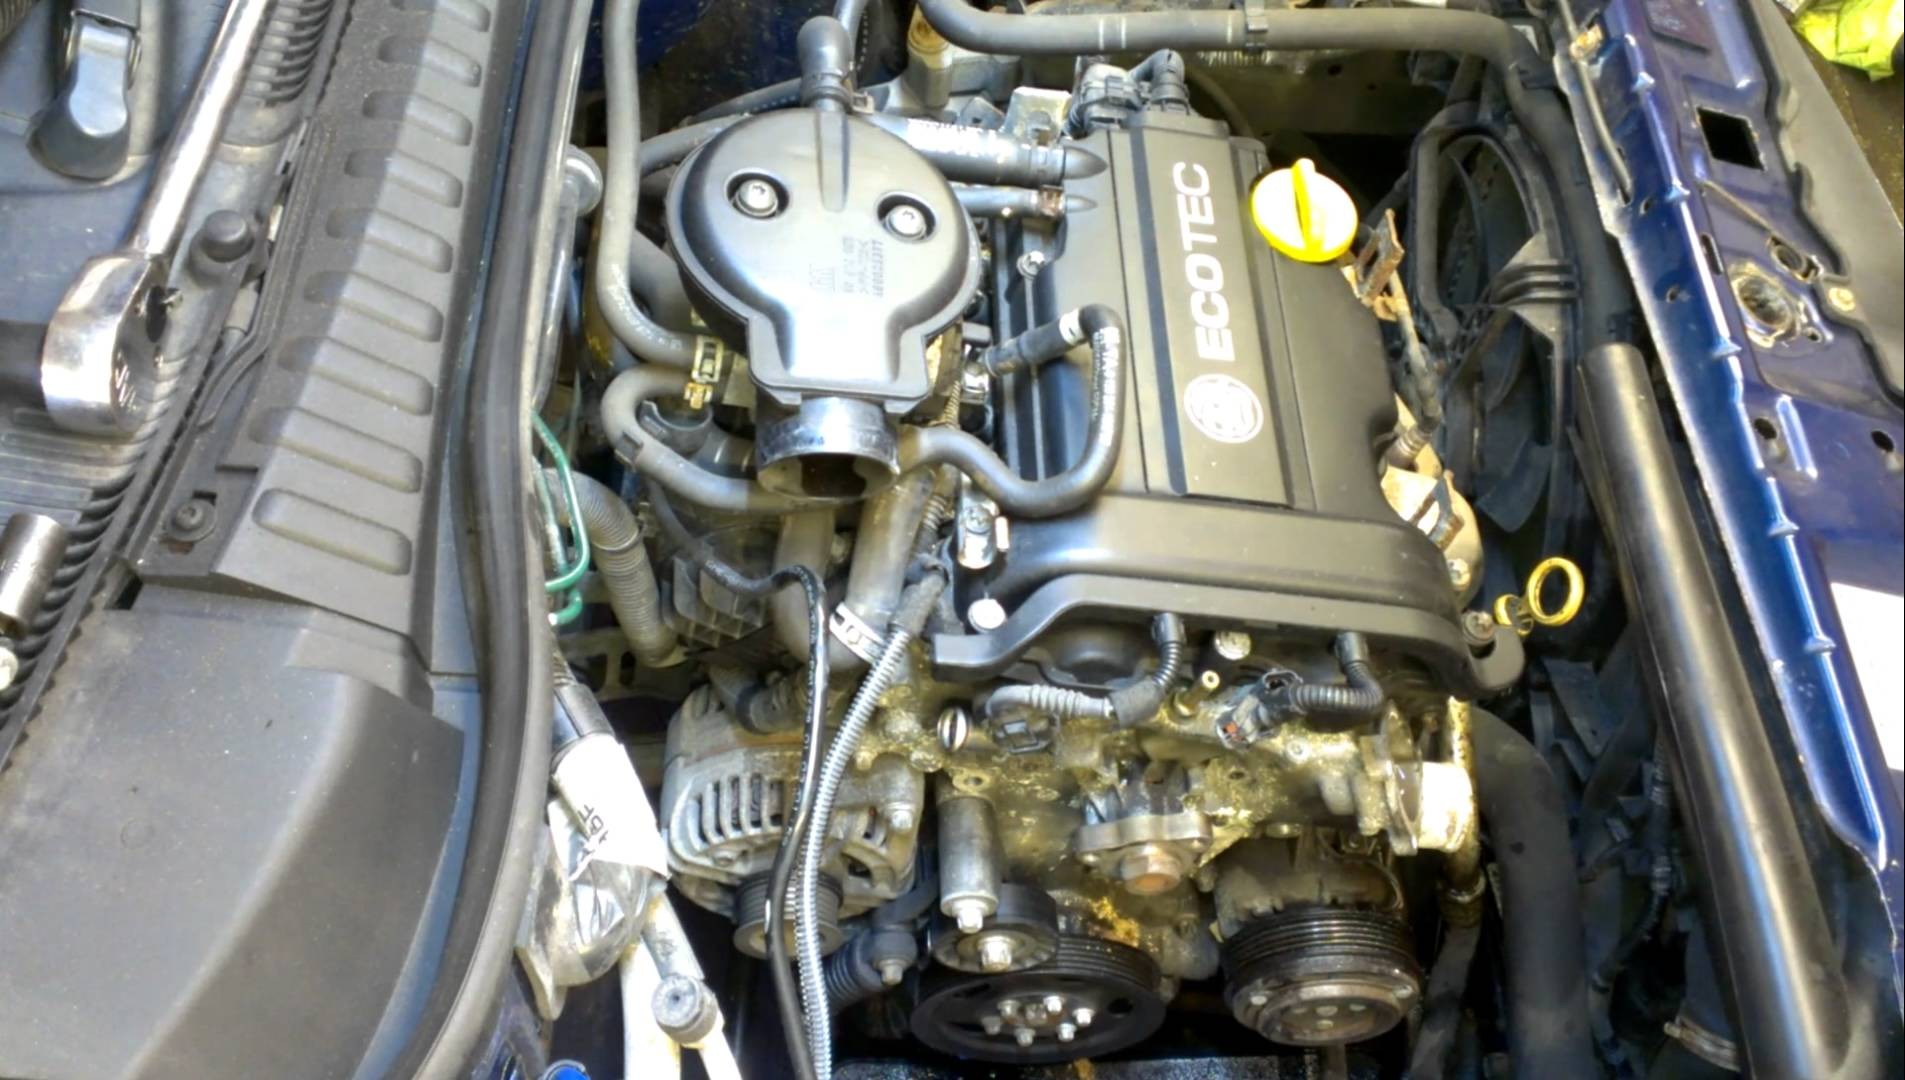 ... Vauxhall Corsa Engine Wiring Diagram Free Of. Related Post